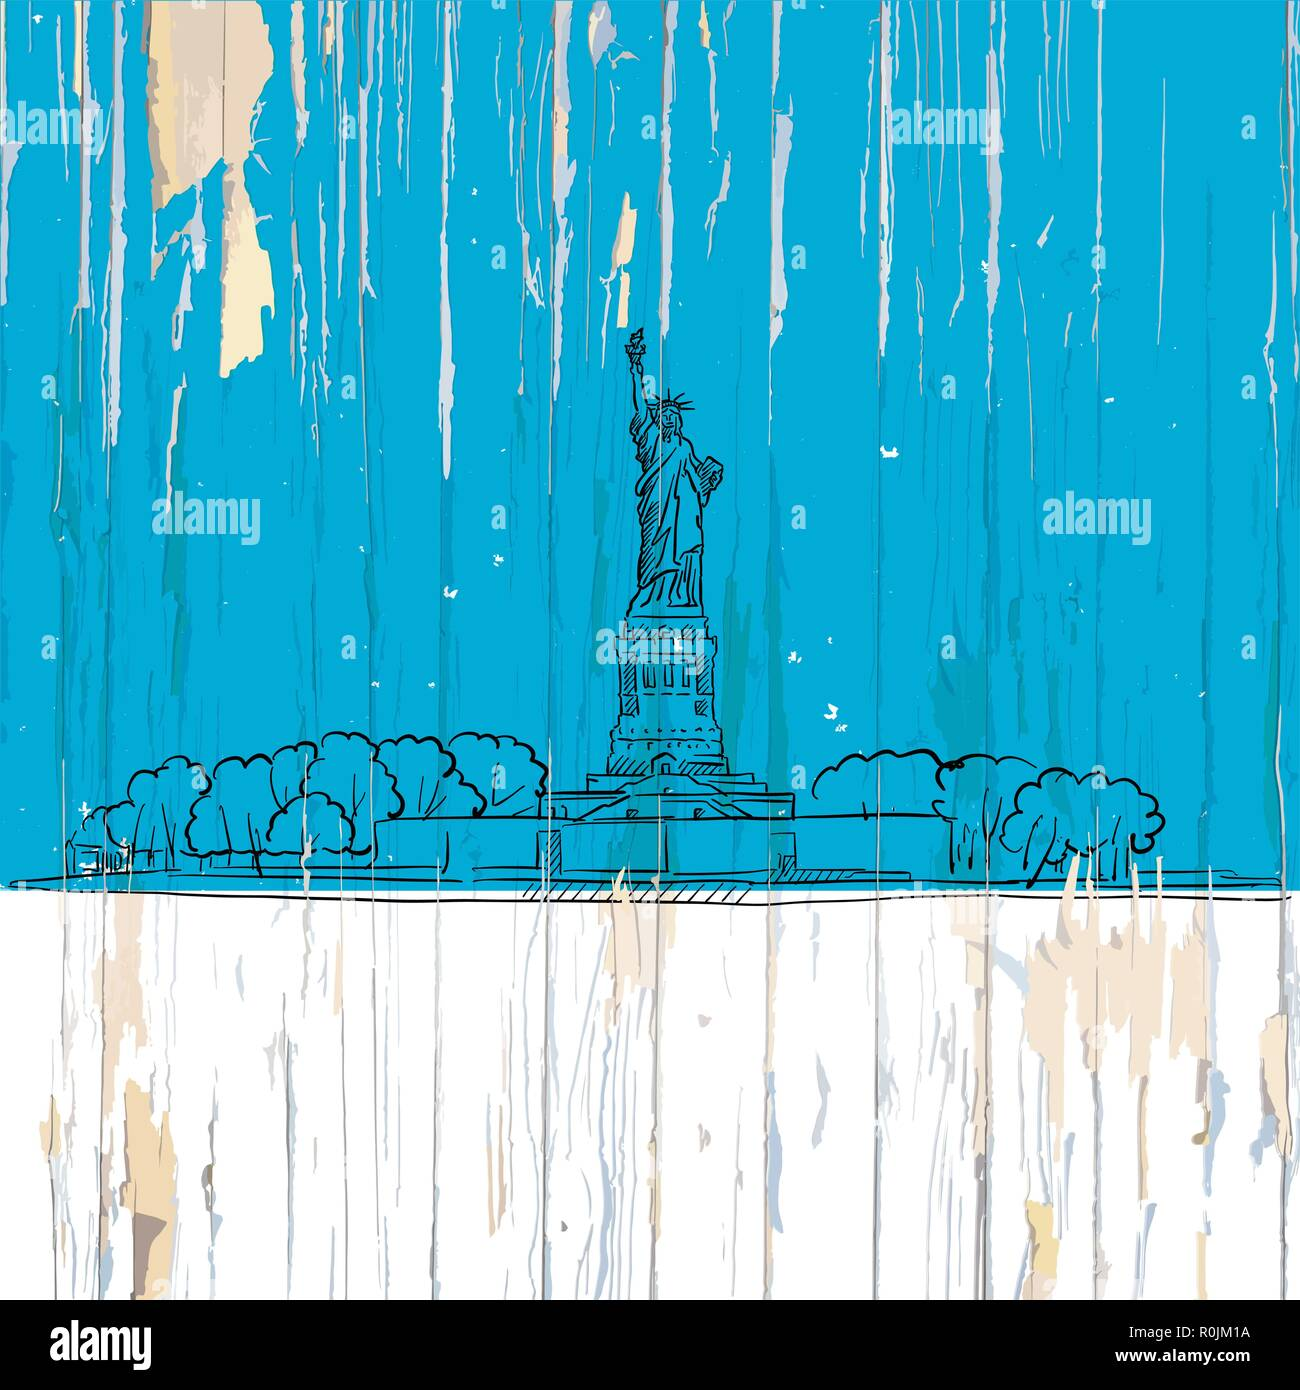 Liberty island sketch on wood. Vector illustration on vintage background. Stock Vector